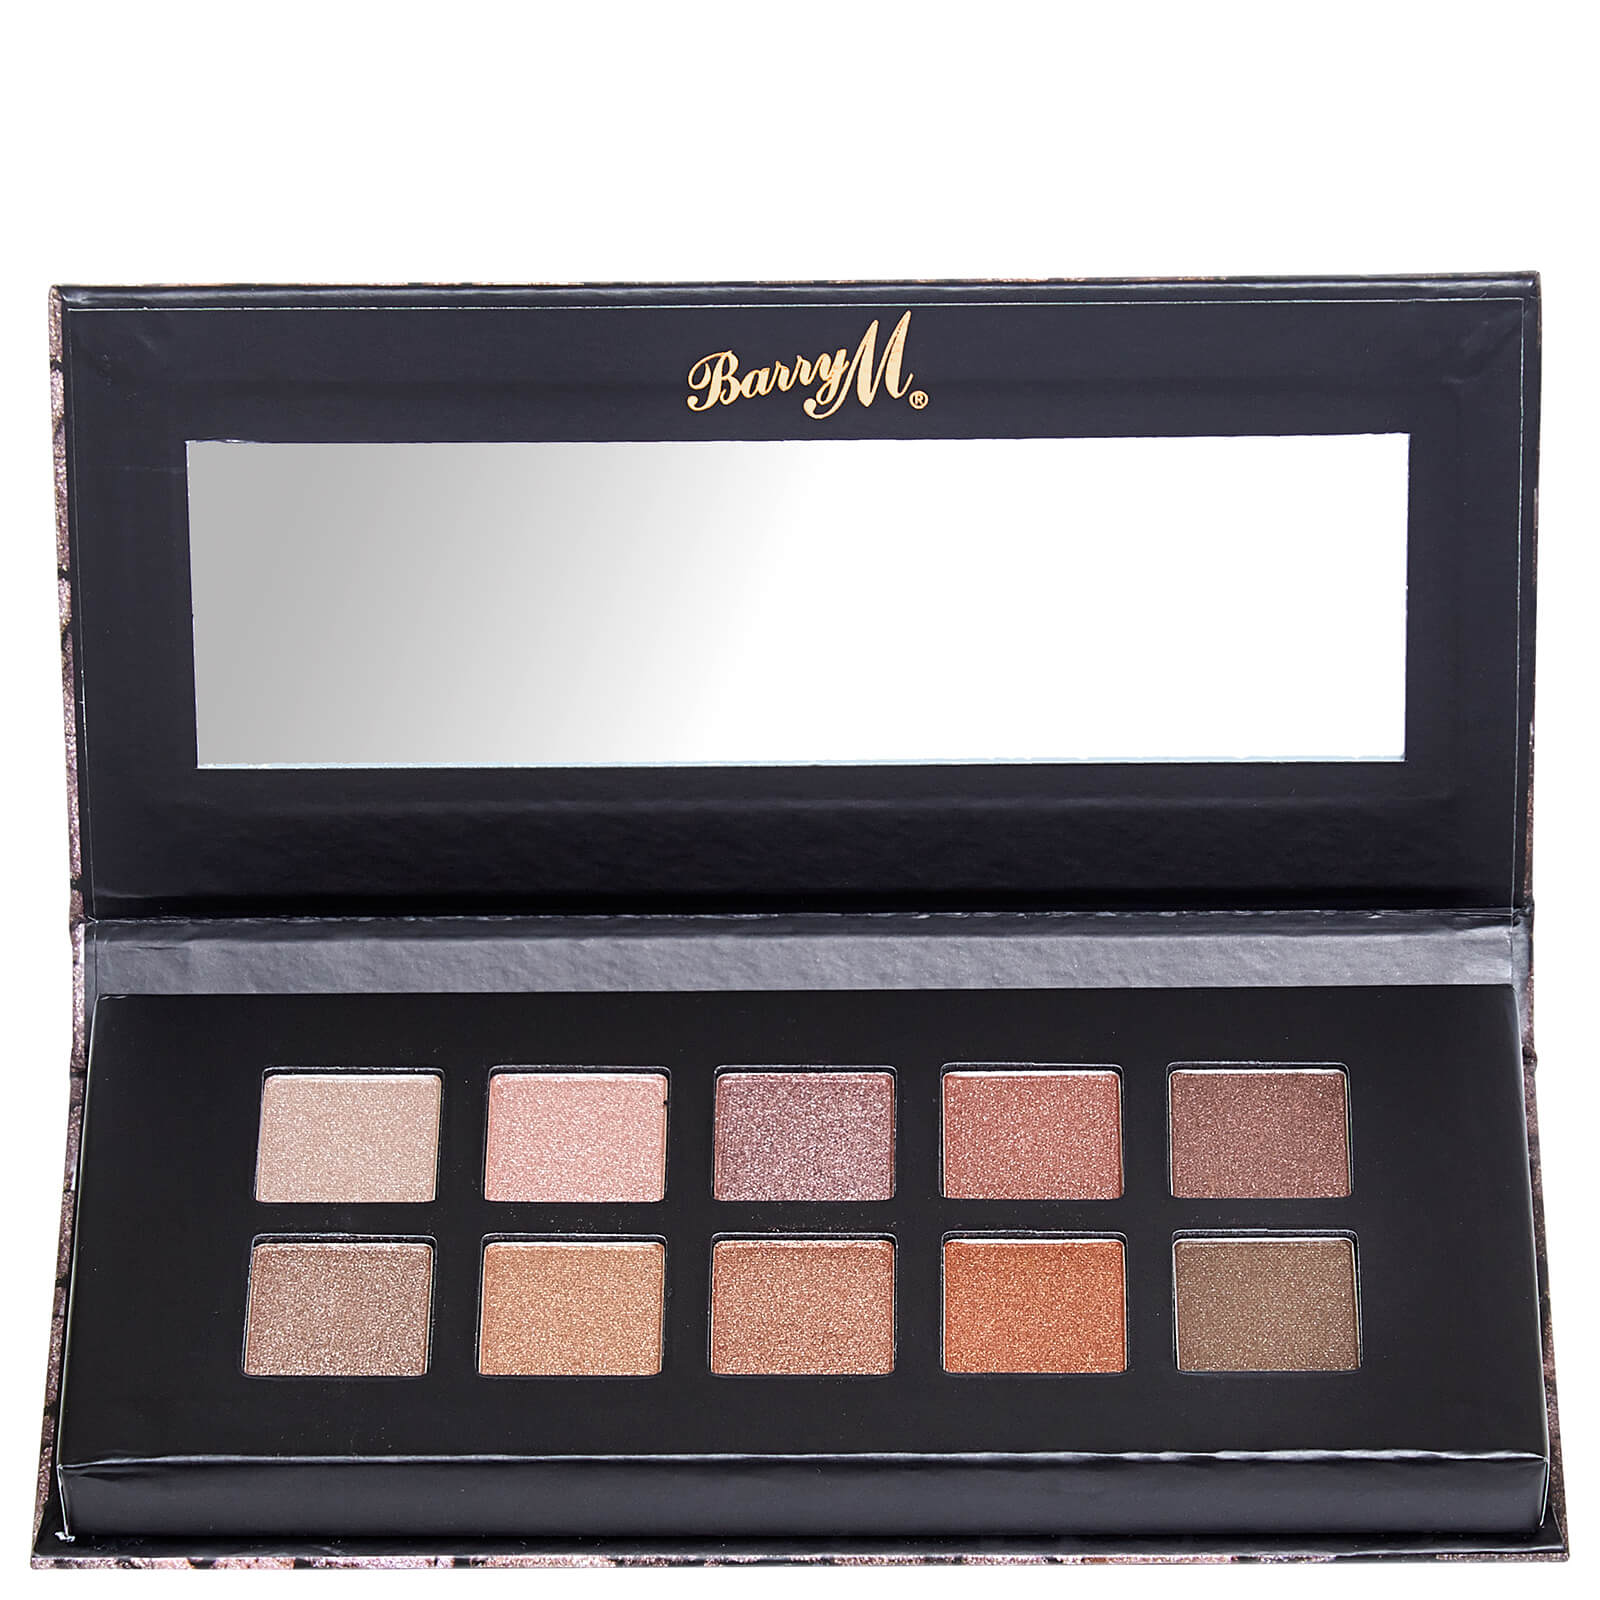 Barry M Cosmetics Deluxe Metals Eyeshadow Palette